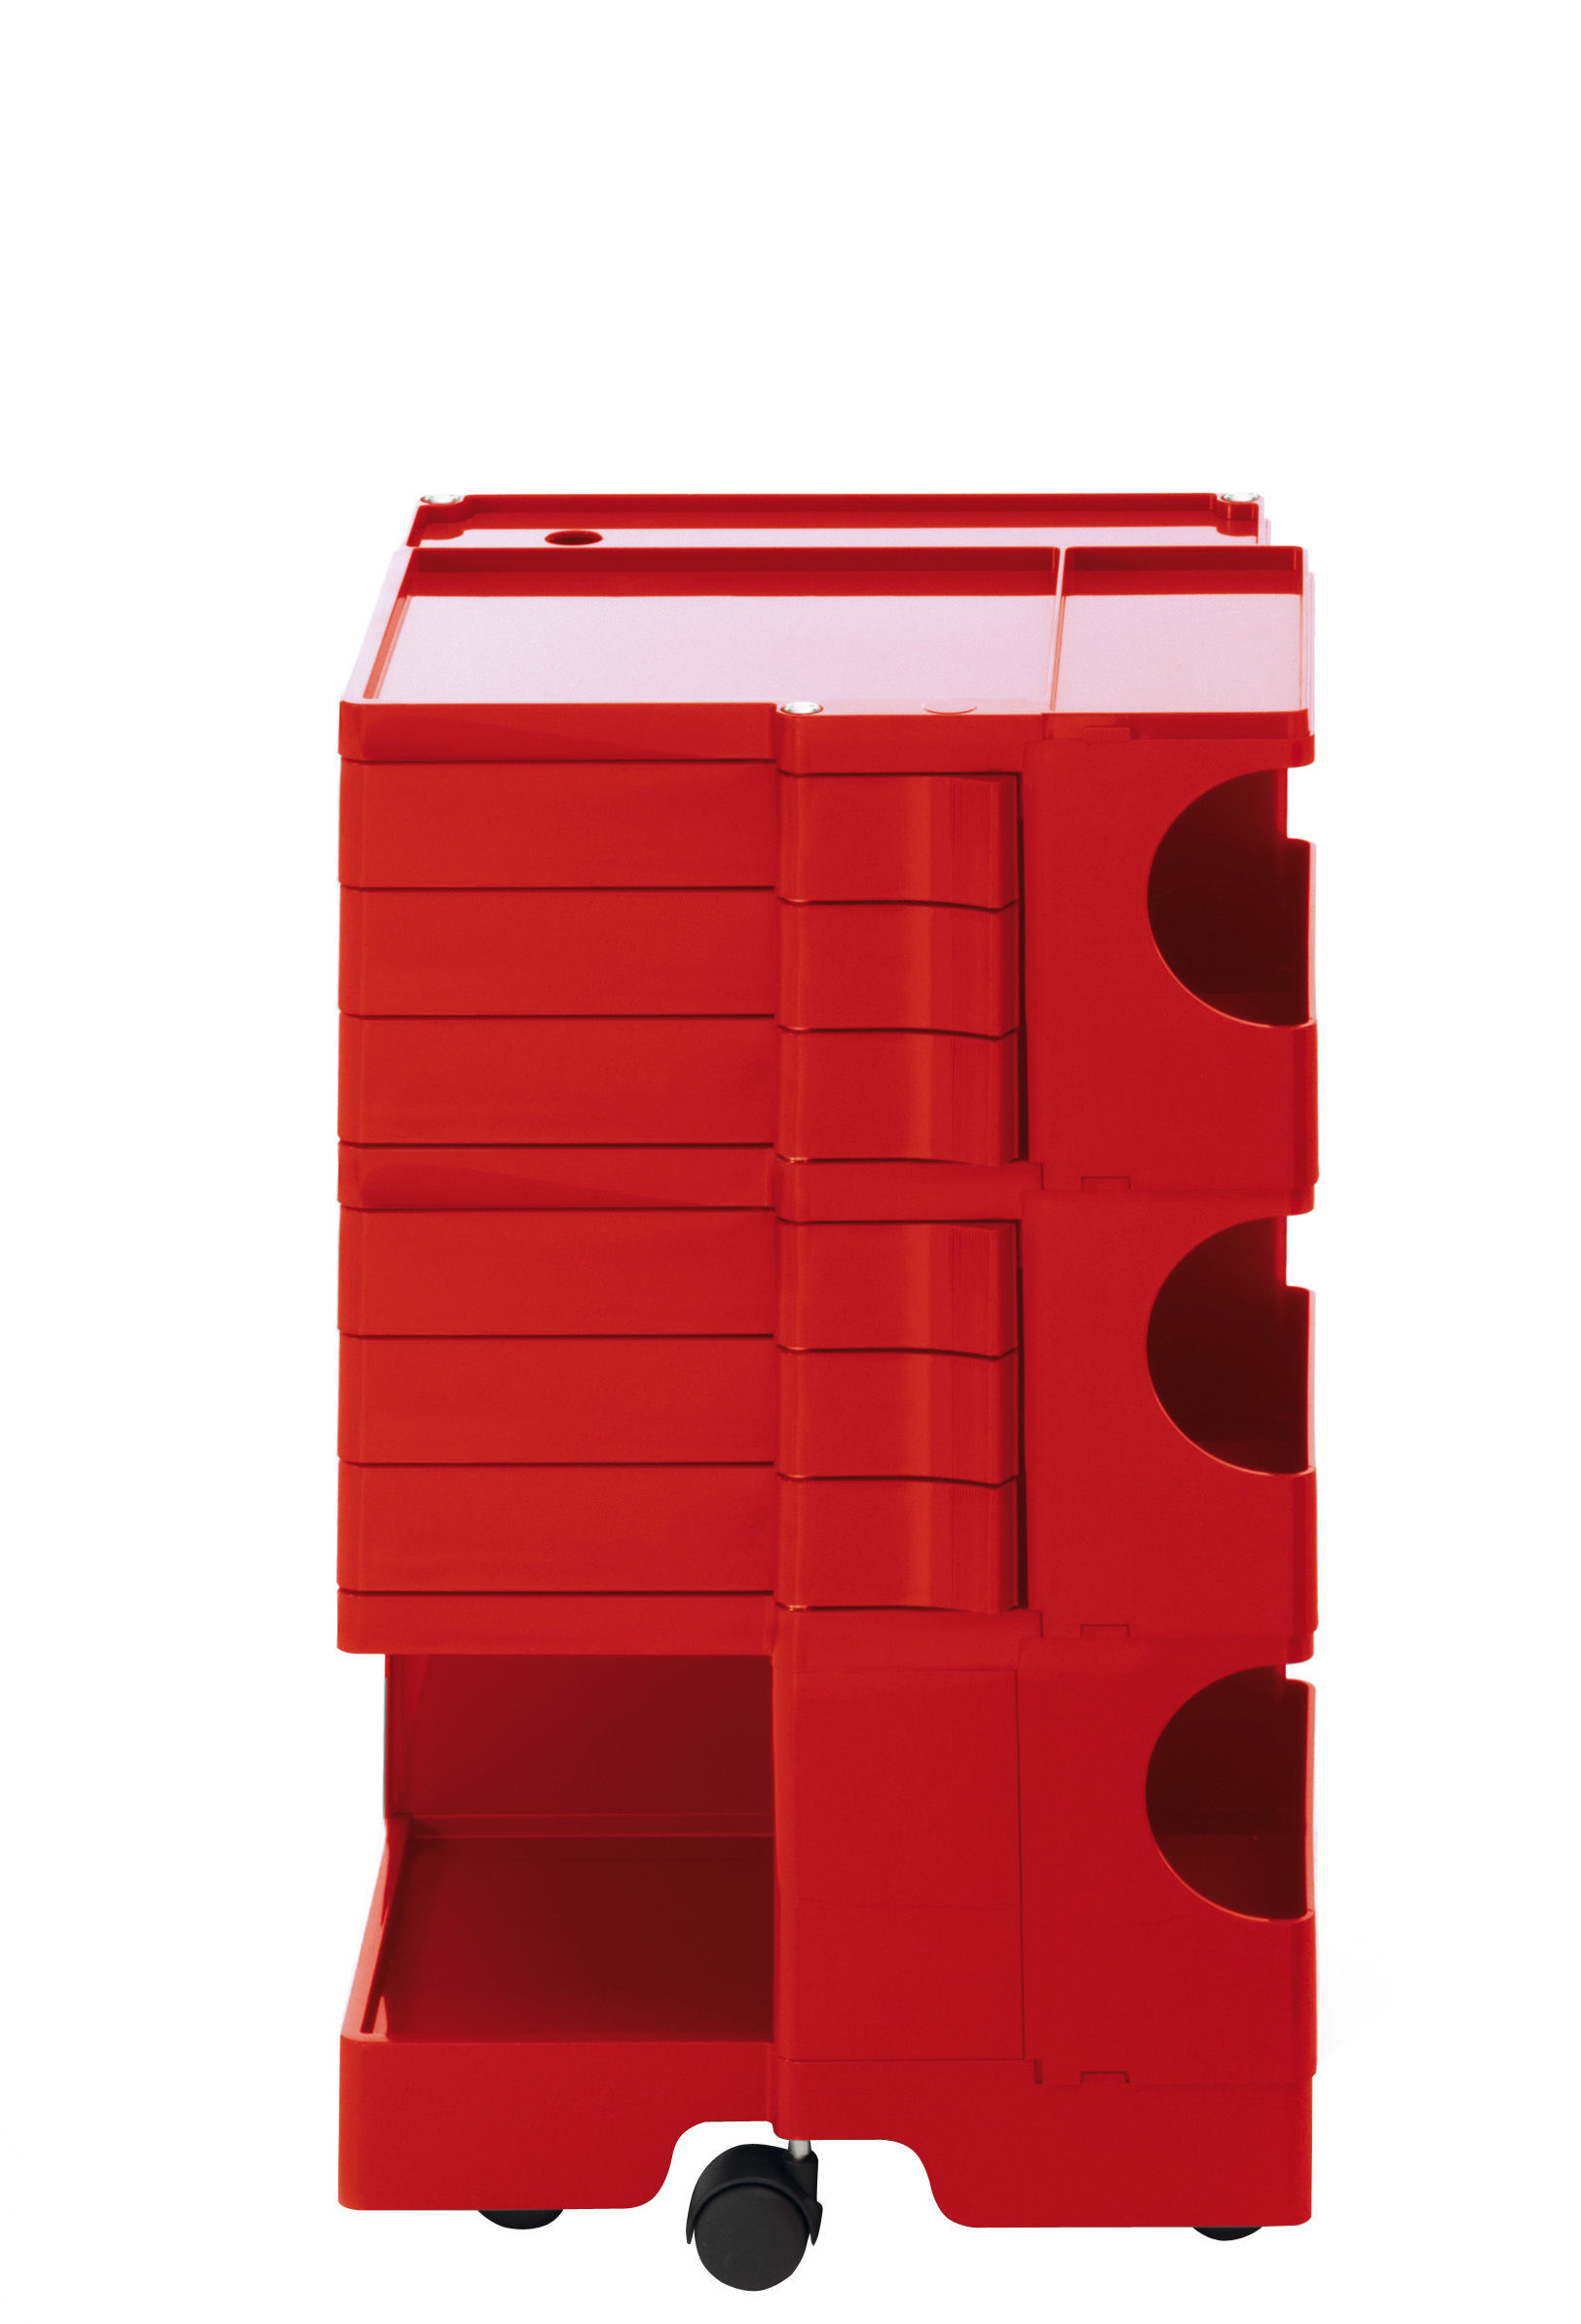 Furniture - Miscellaneous furniture - Boby Dresser - H 73 cm - 6 drawers by B-LINE - Red - ABS